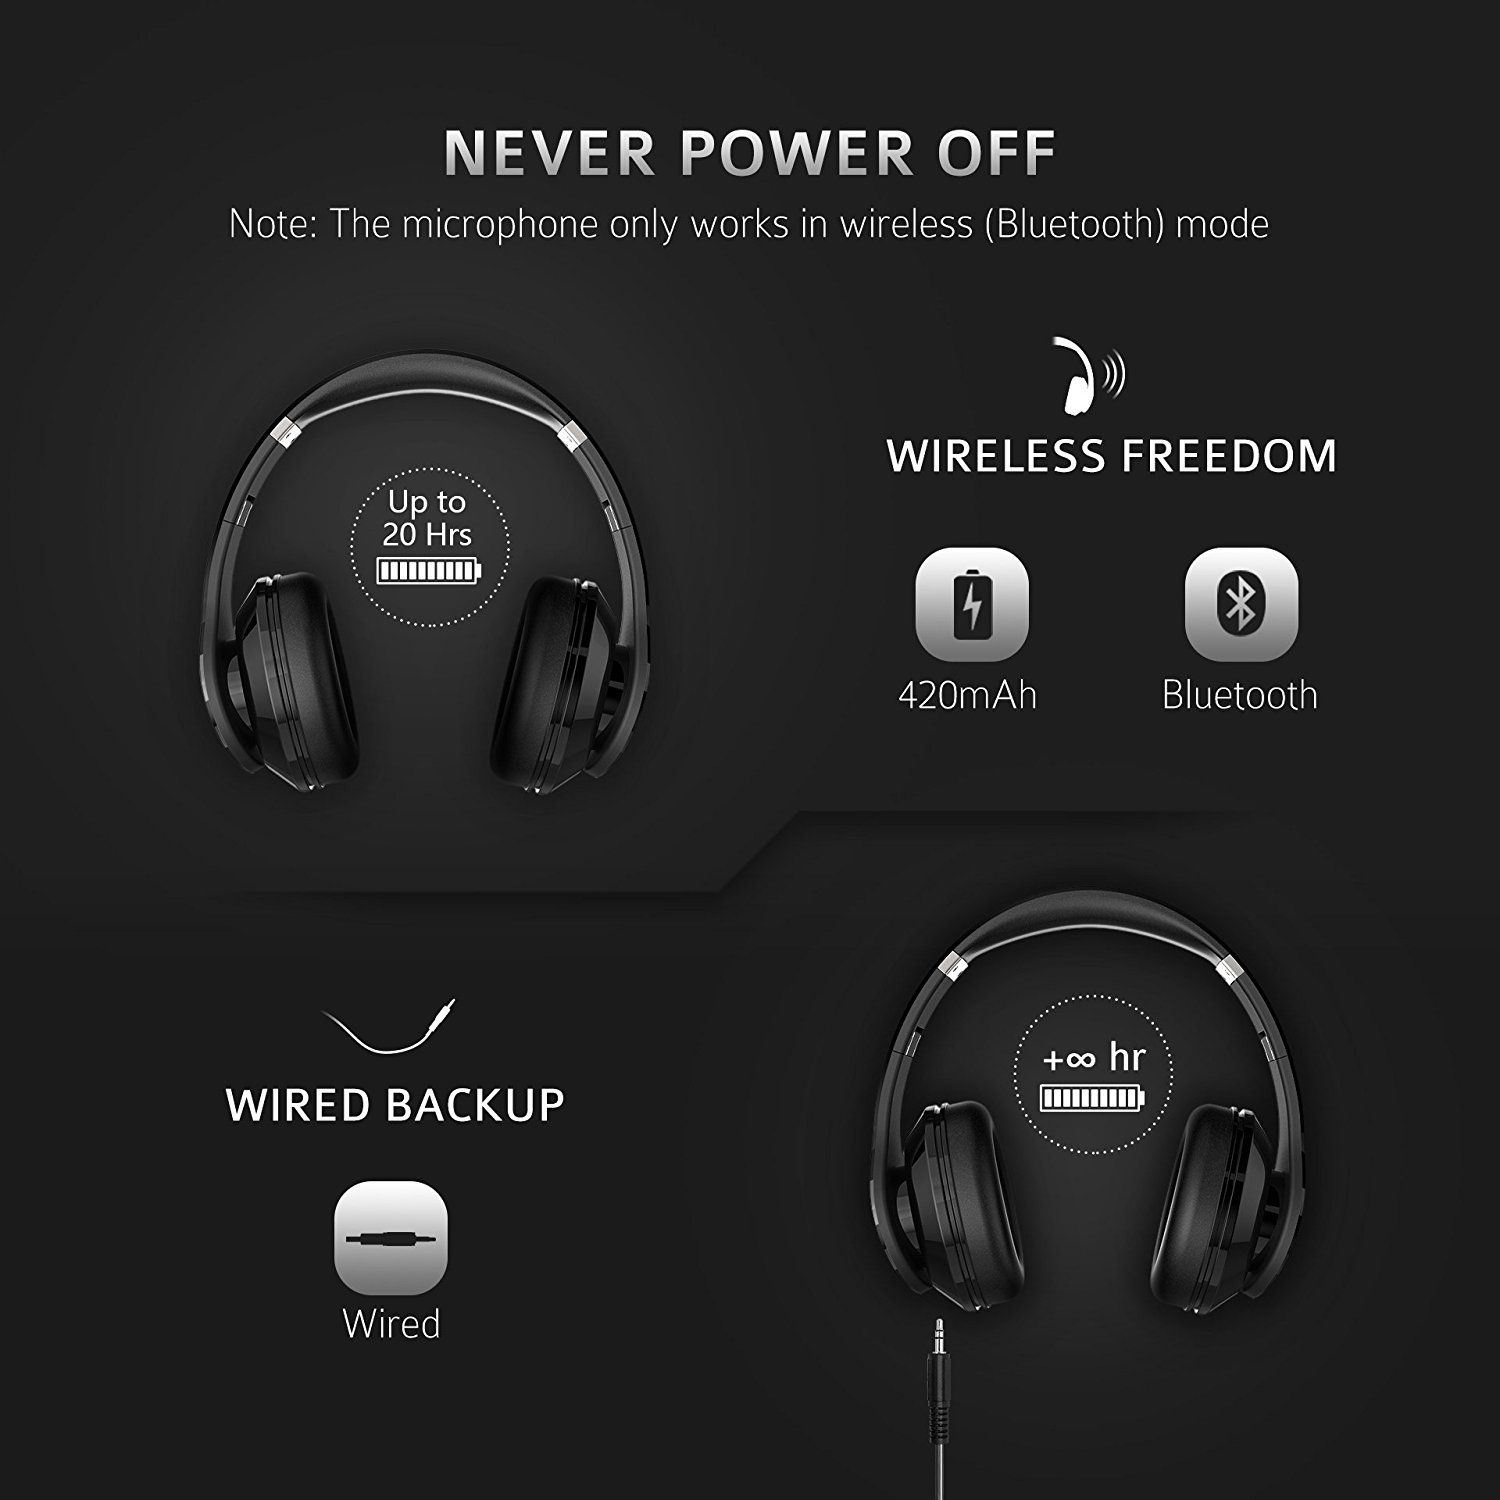 Mpow 059 bluetooth headphones with images bluetooth